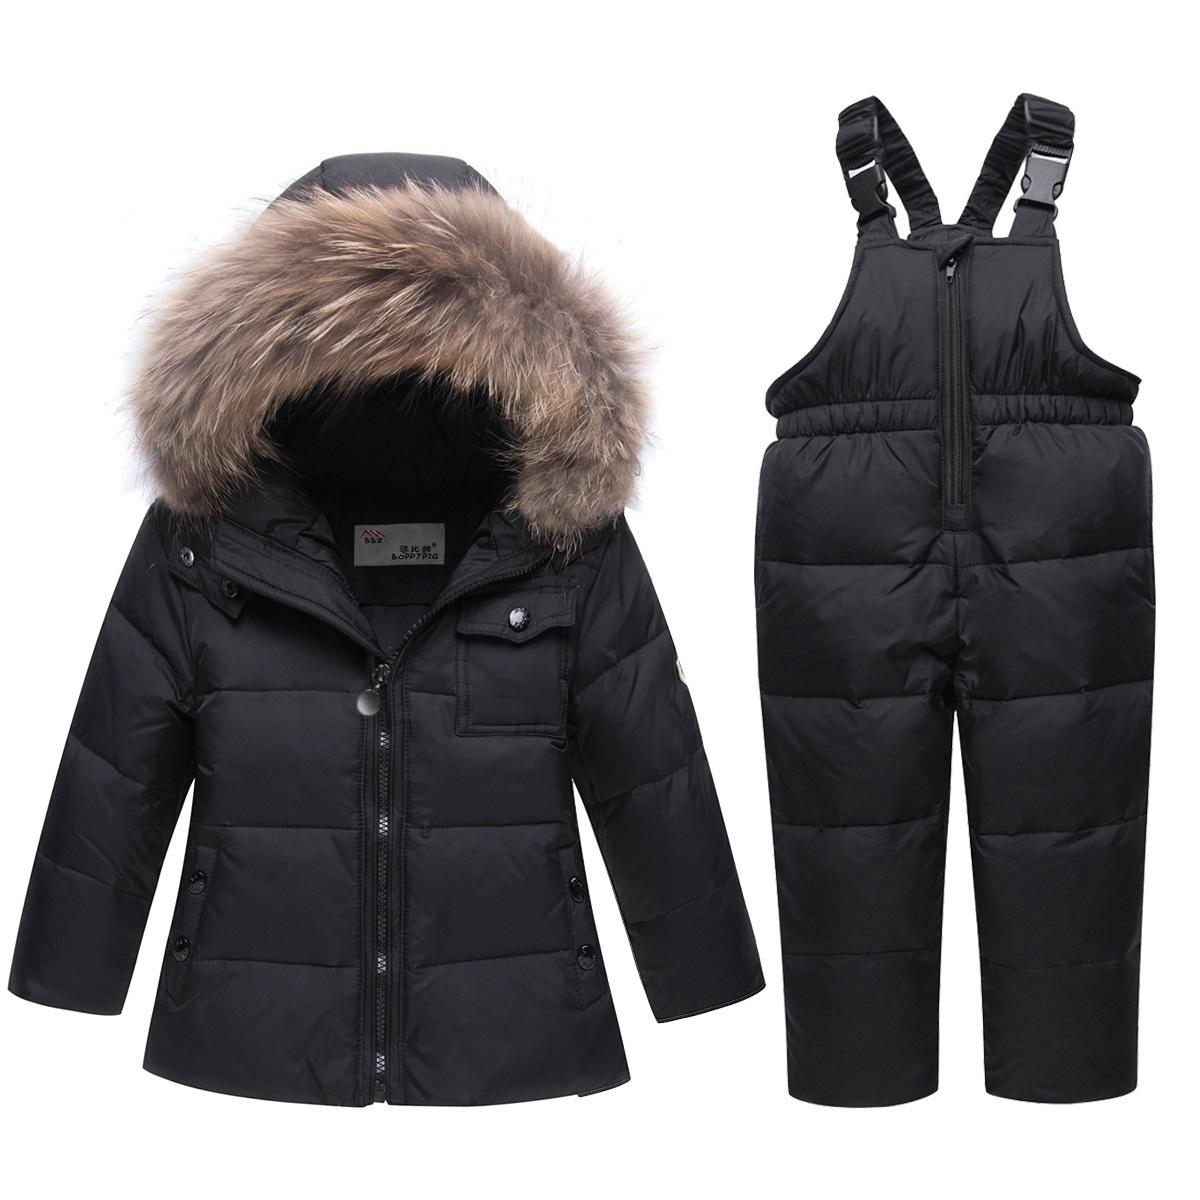 2b680fc3e OLEKID 30 Degree Winter Children Boys Clothes Set Warm Down Jacket ...